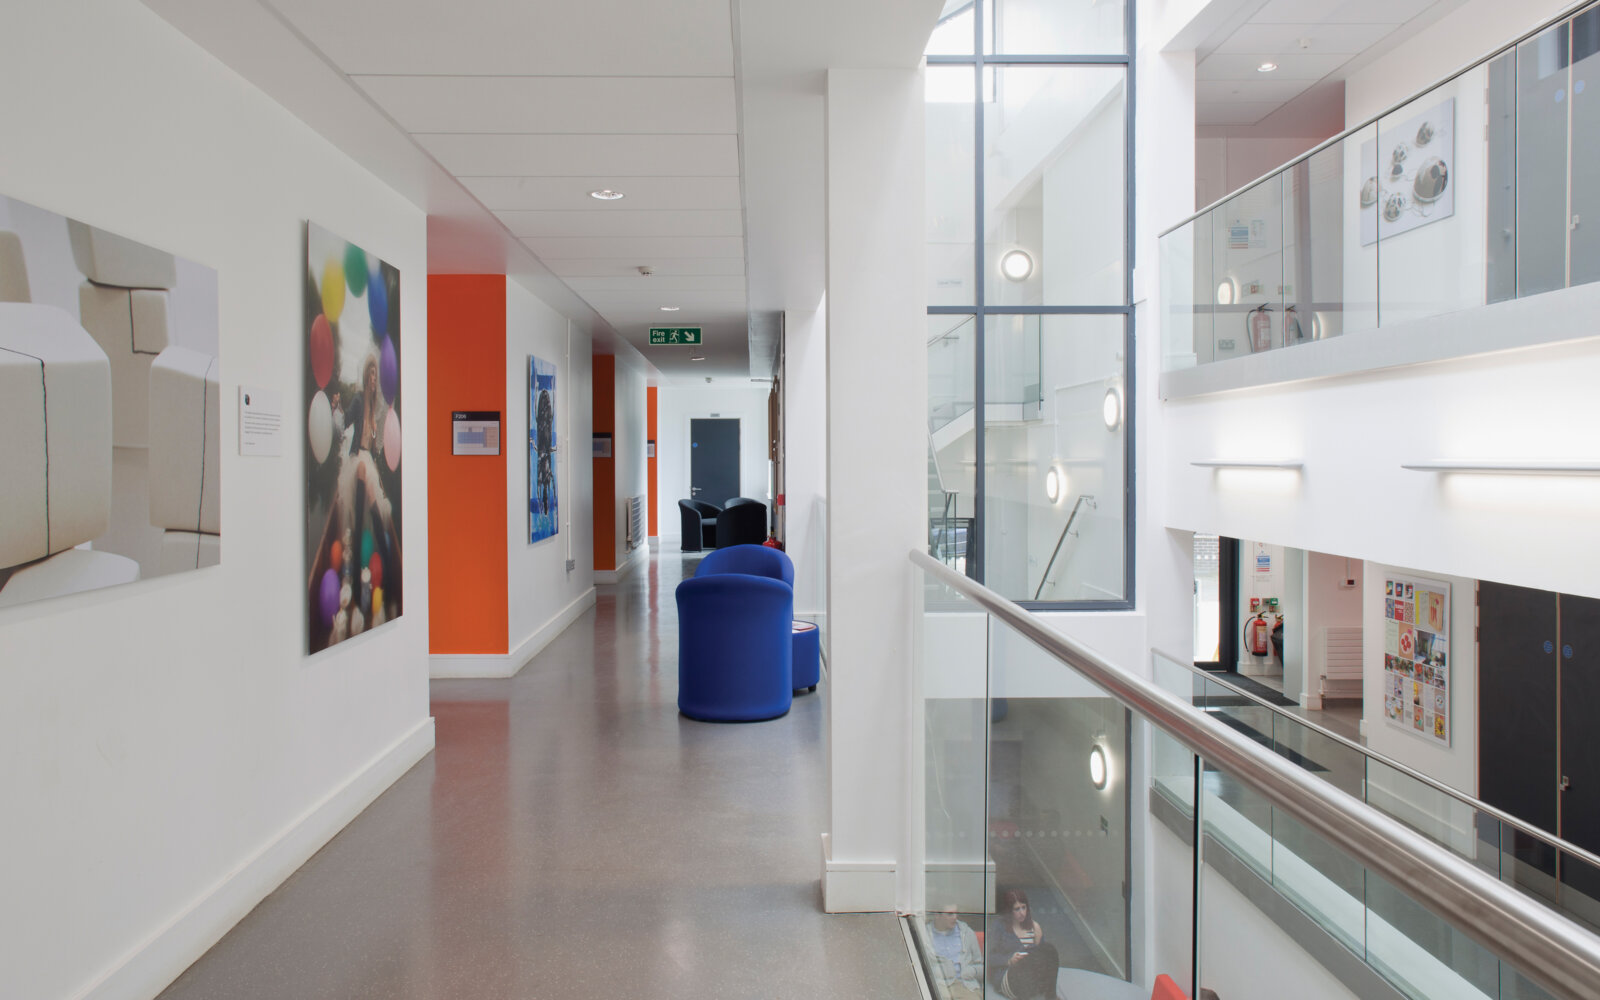 Activate Learning Oxfordshire balcony interior